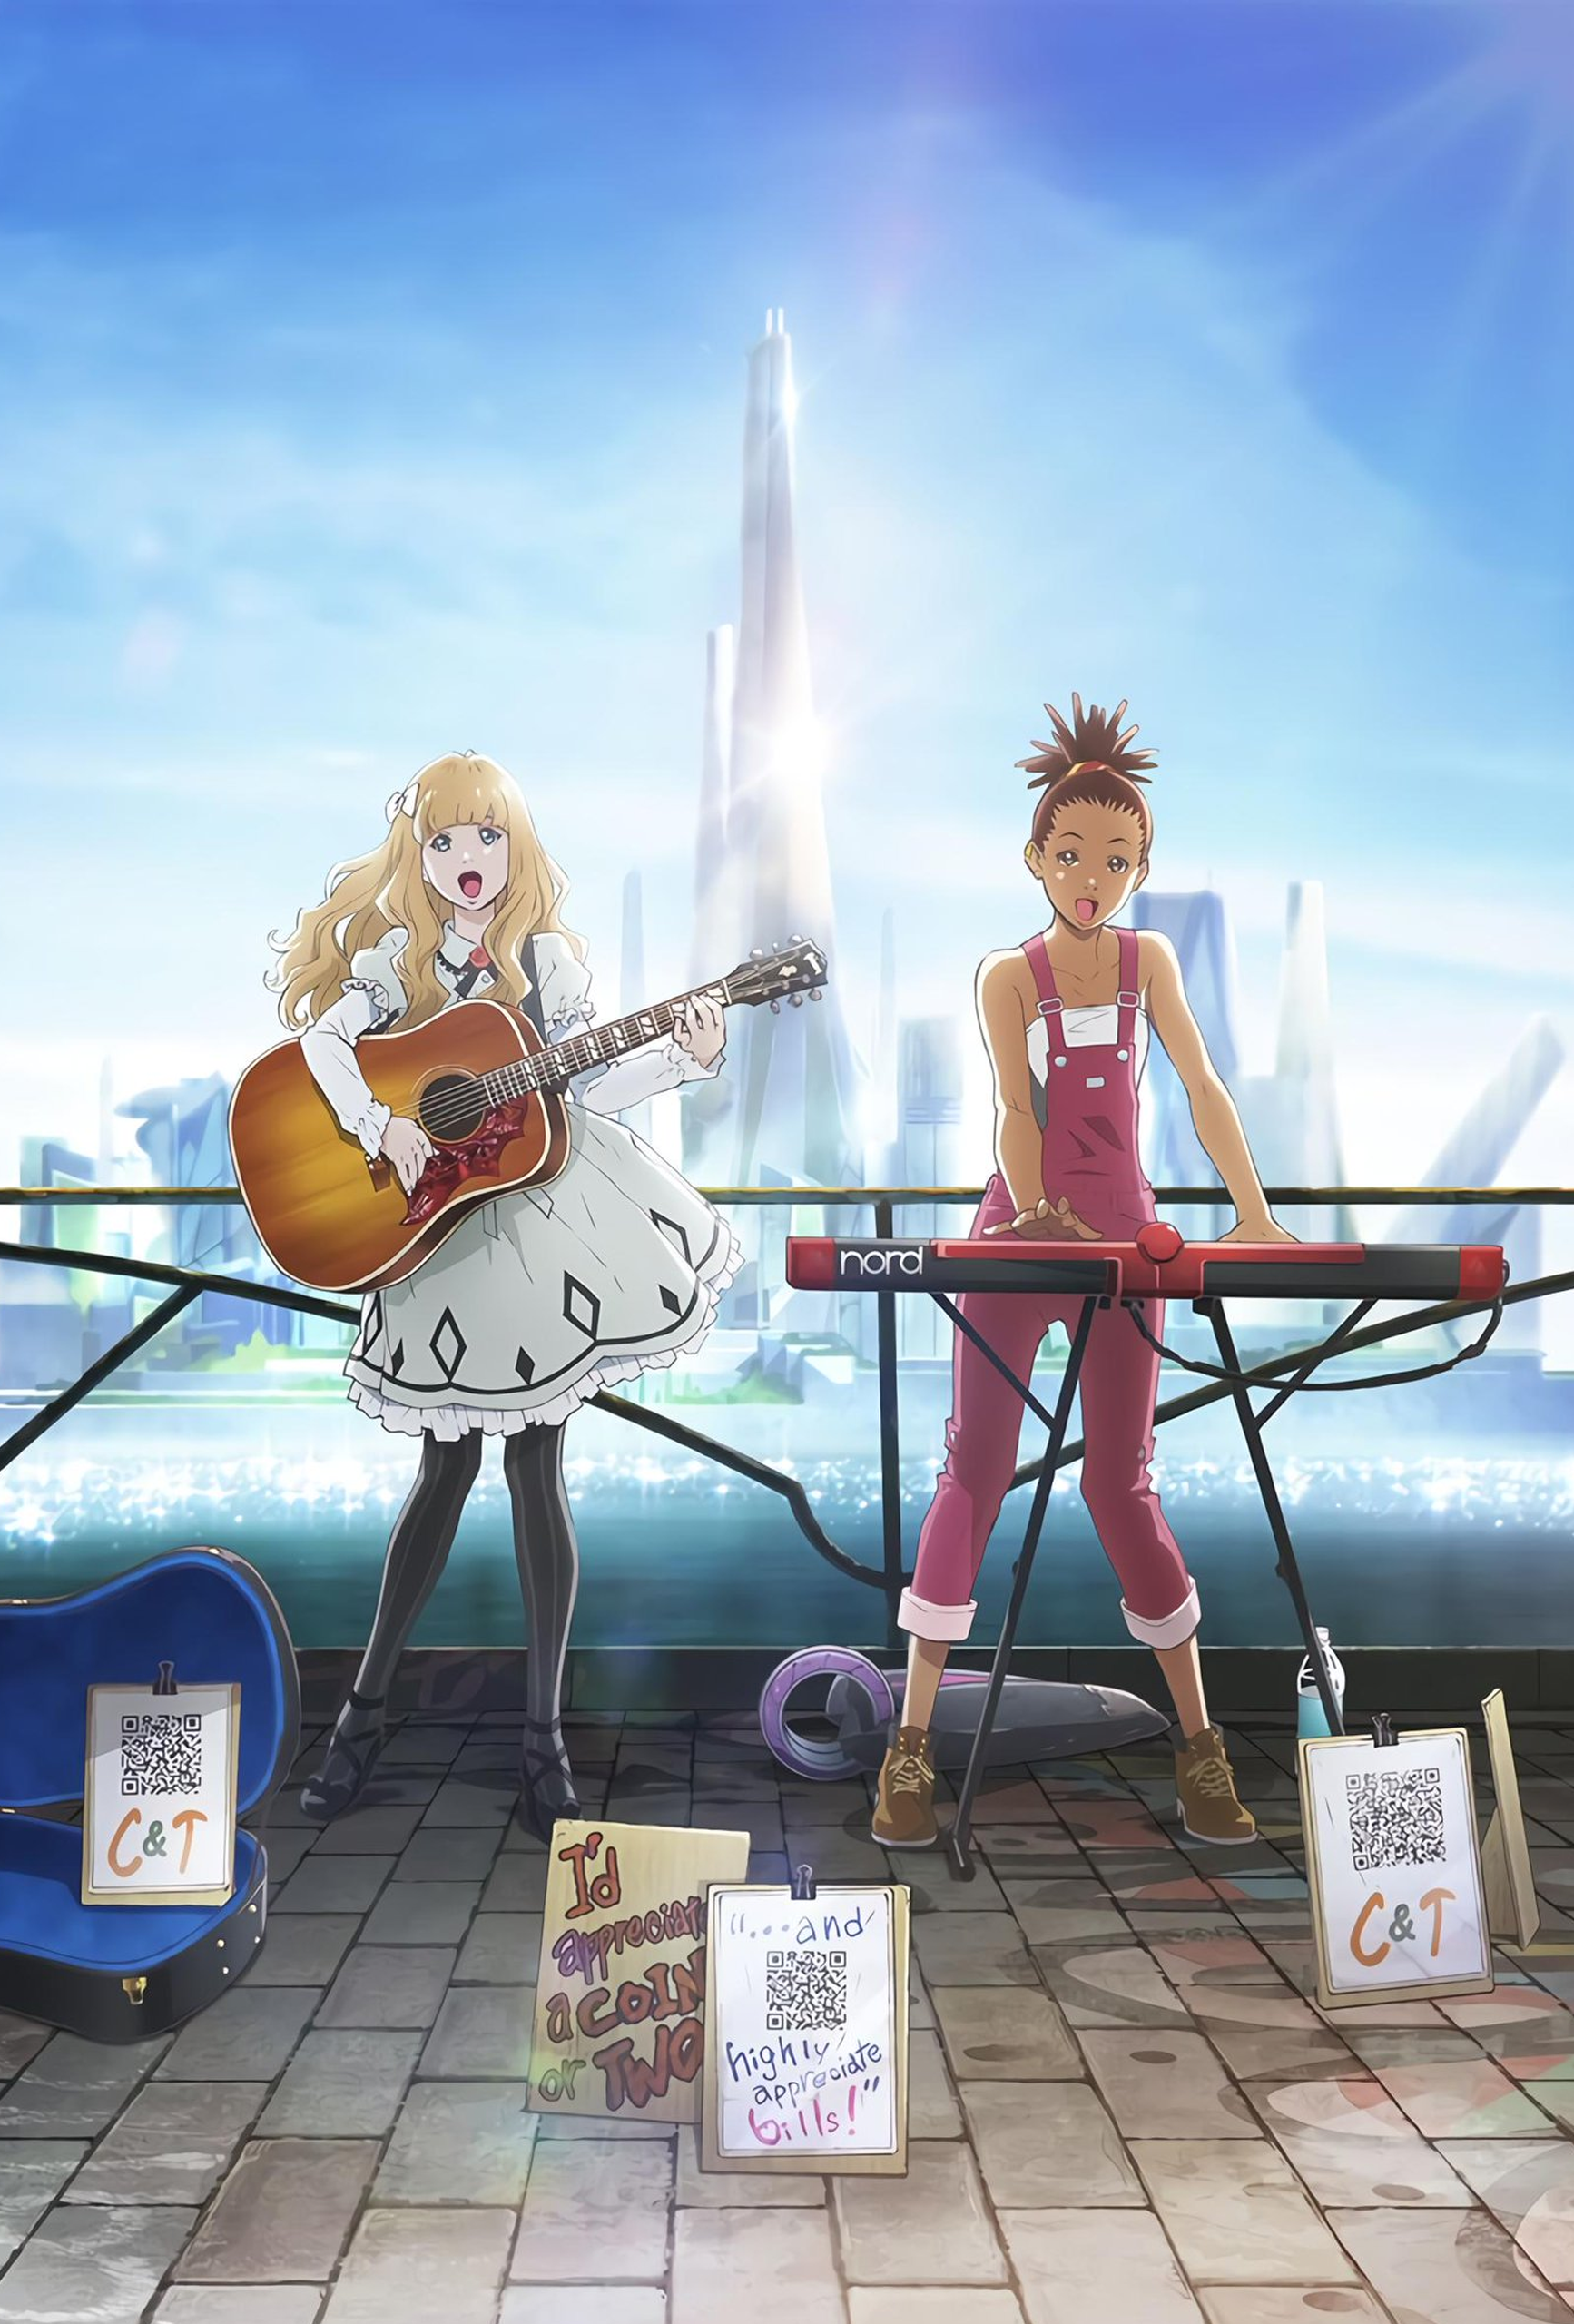 Carole & Tuesday Anime of the Season